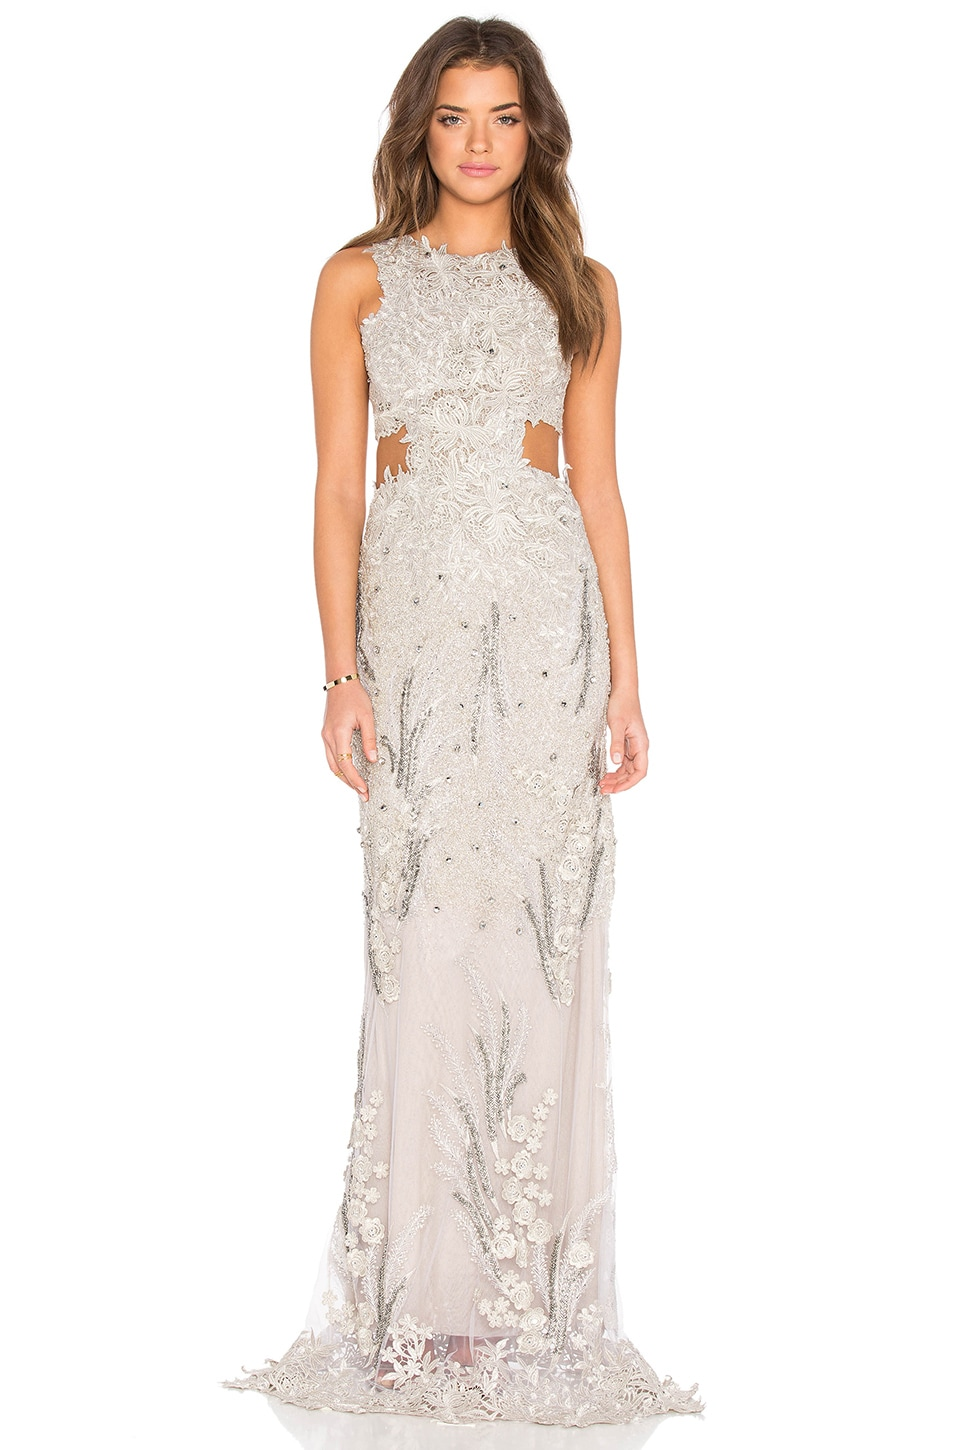 Patricia Bonaldi Embellished Sheer Gown in Silver